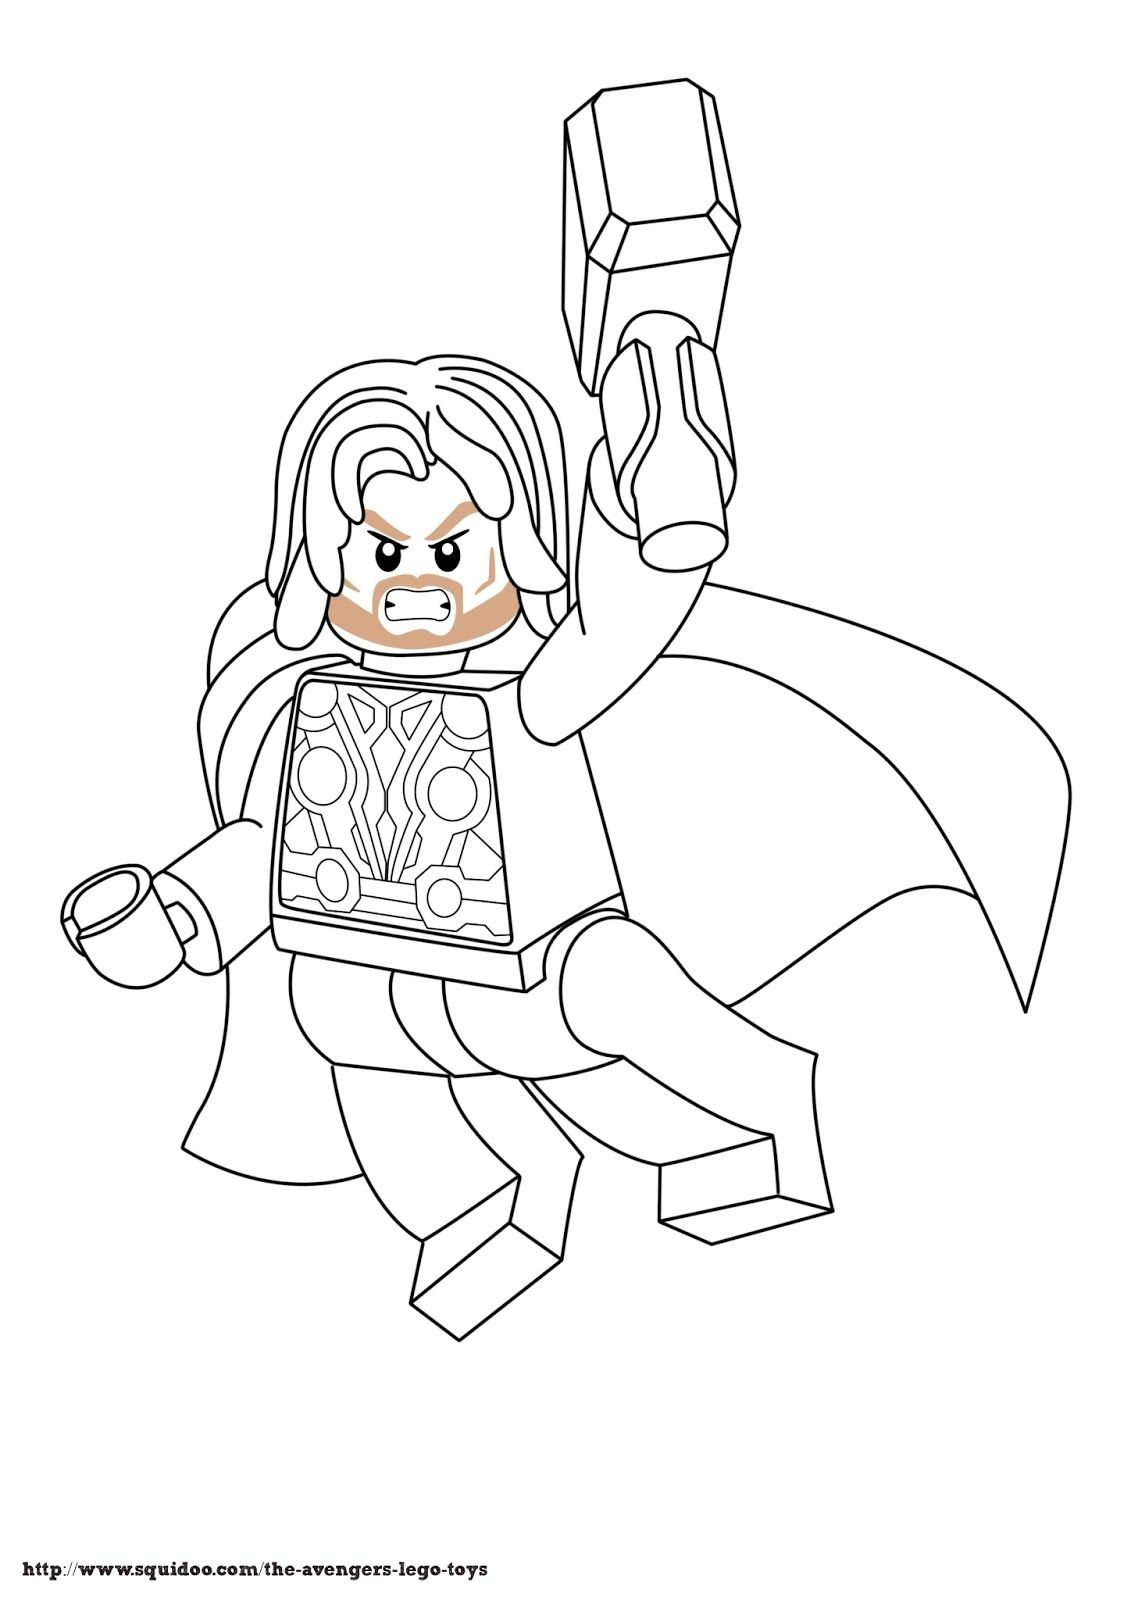 Thor Coloring Pages To Print | Avenger+lego+coloring+